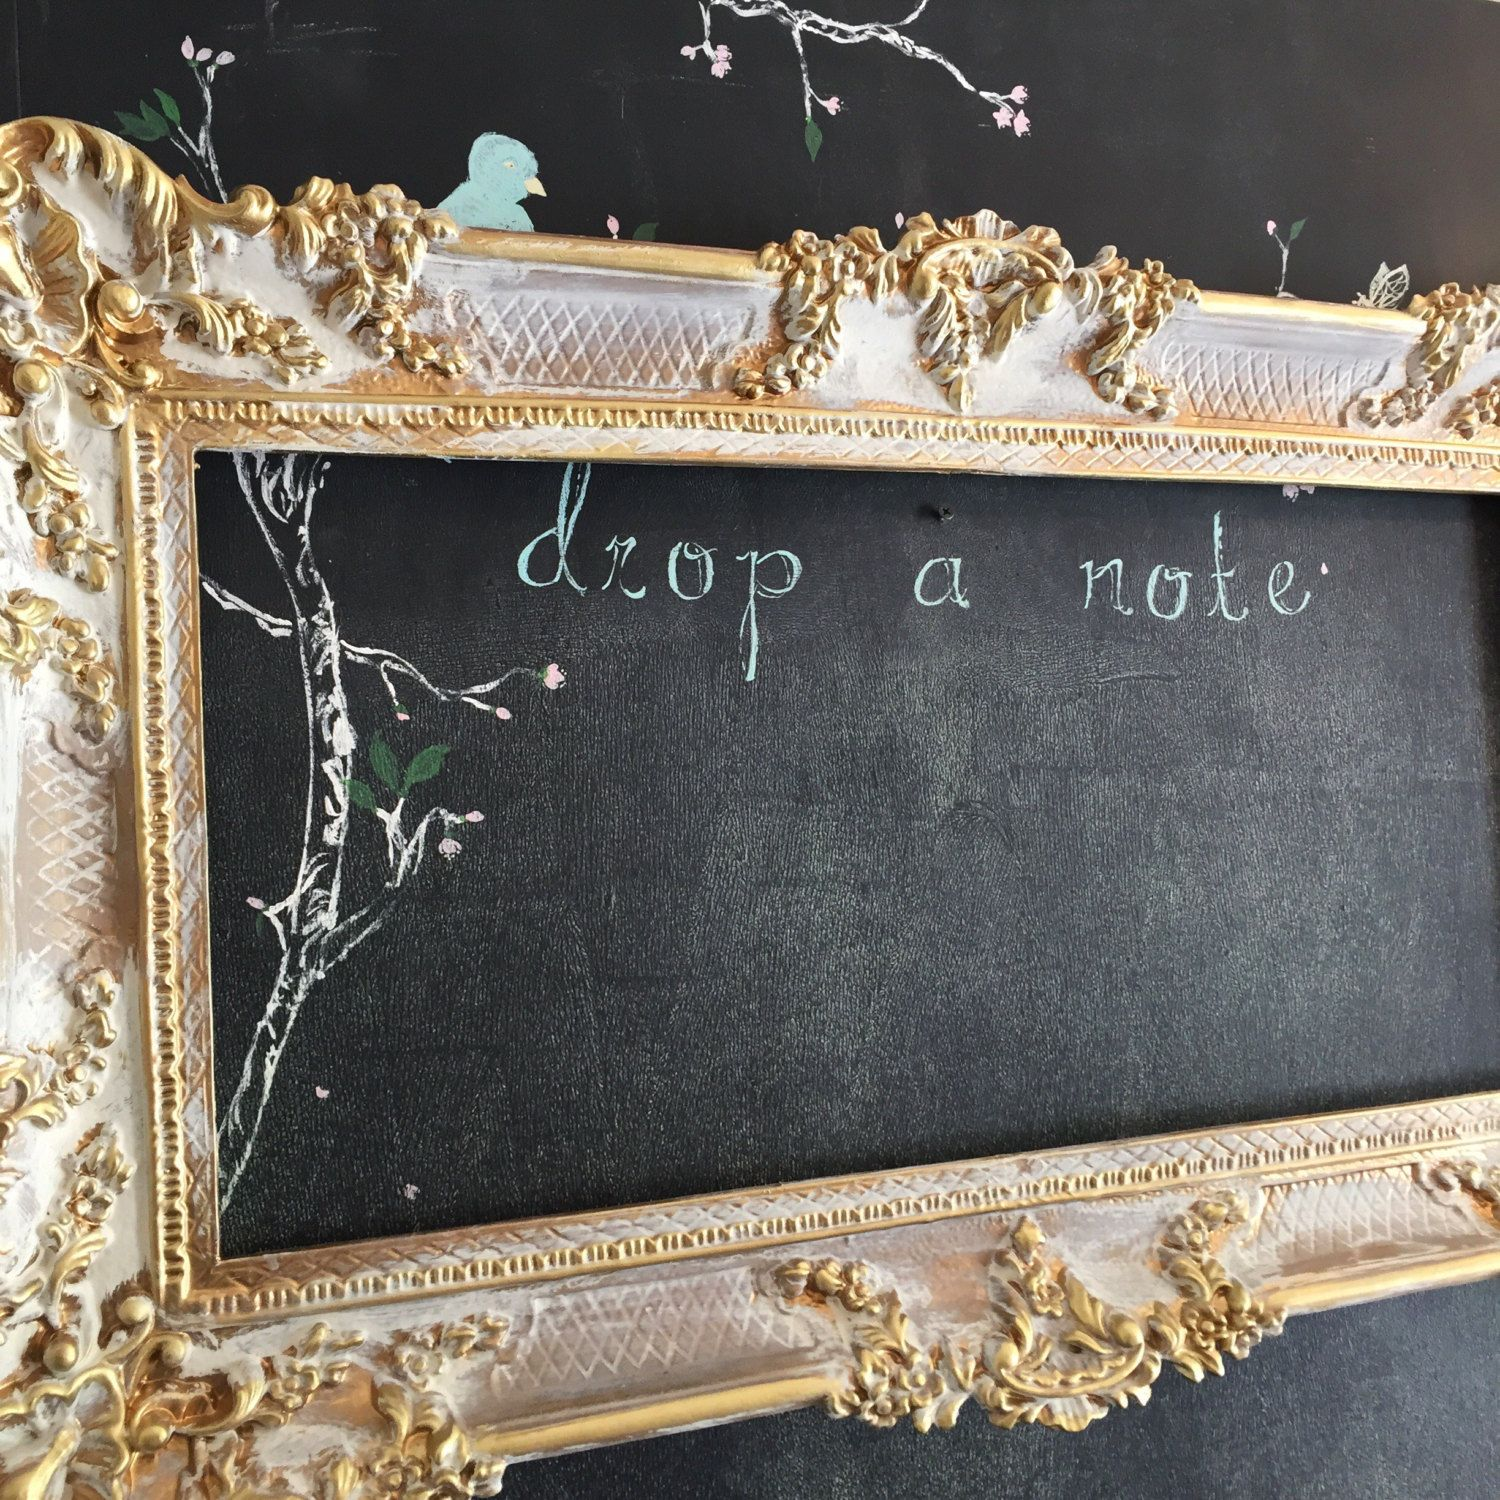 Gold Baroque Wedding Chalkboard Ornate Menu Board Shabby Chic Large